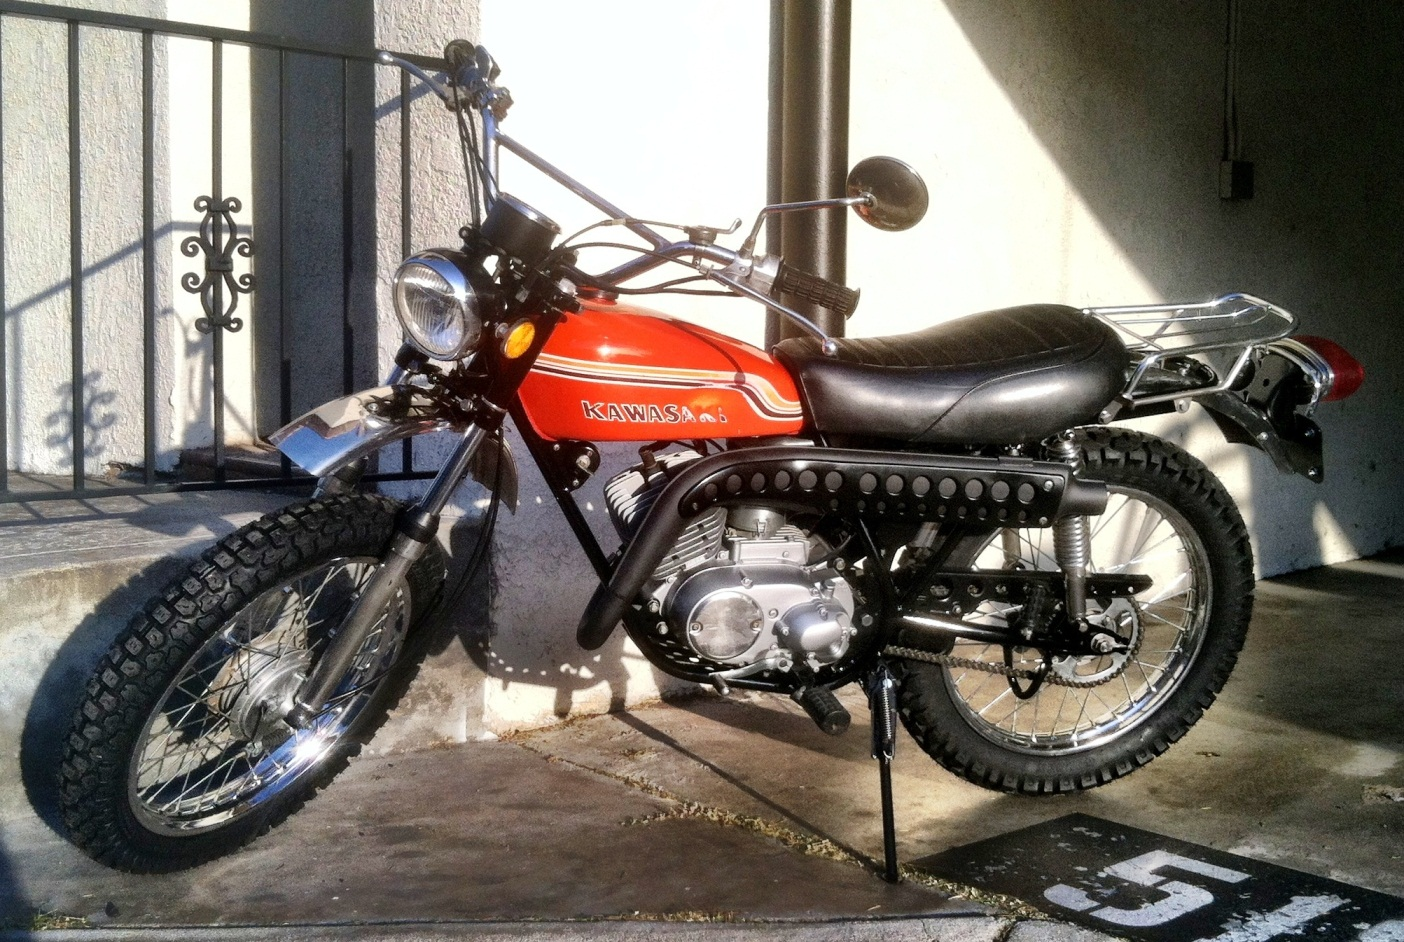 Restoring A 1972 Kawasaki G4 Tr B Motorcycle Final Assembly G4tr Wiring Diagram Ghetto Stand Milk Crate Old Cutting Board And Bath Mat